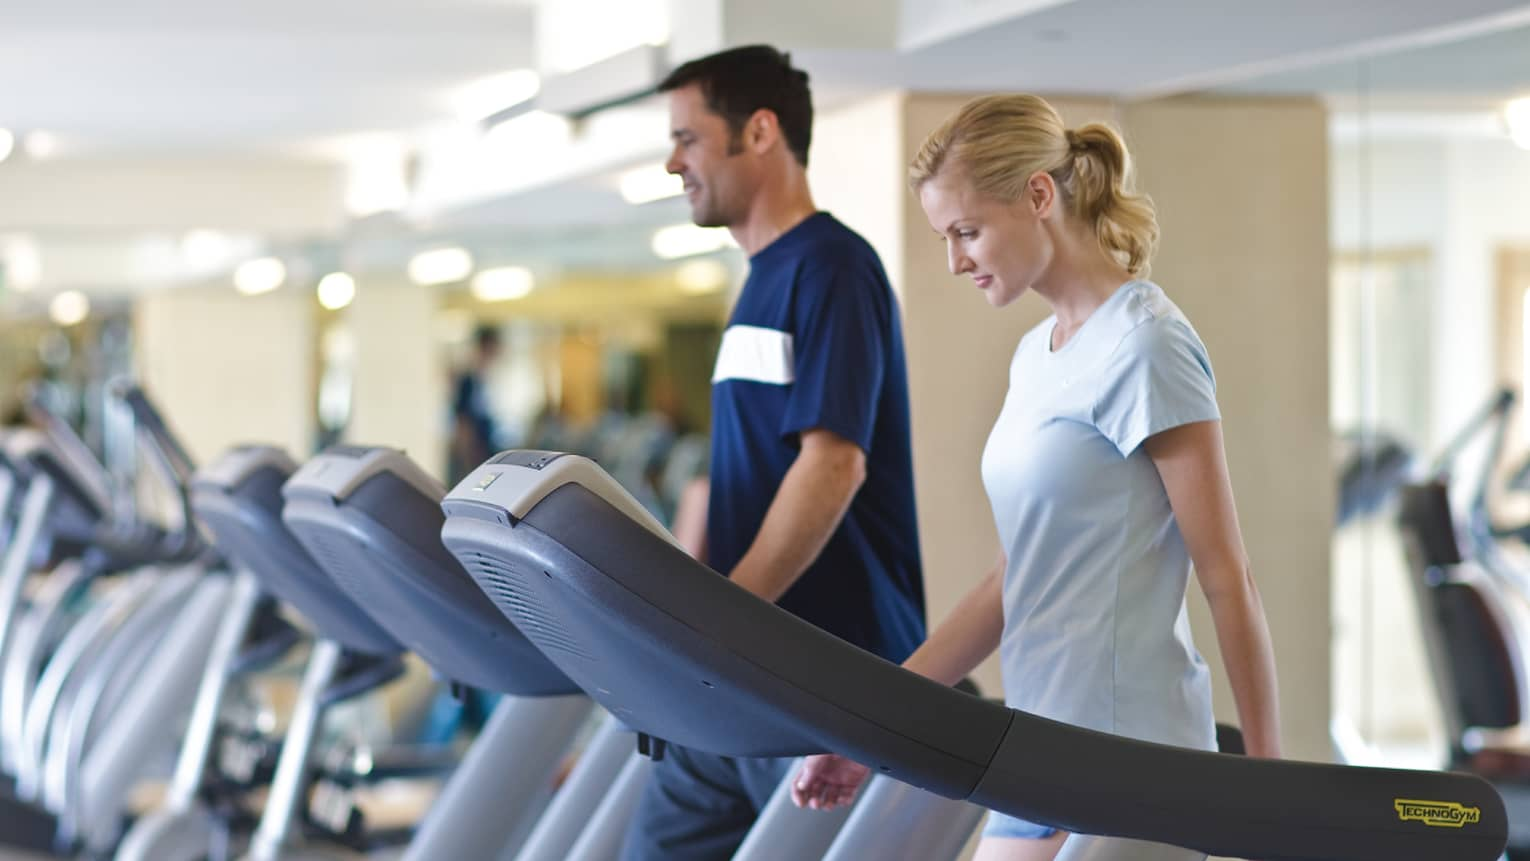 Man and woman on side-by-side cardio treadmill machines in Fitness Centre